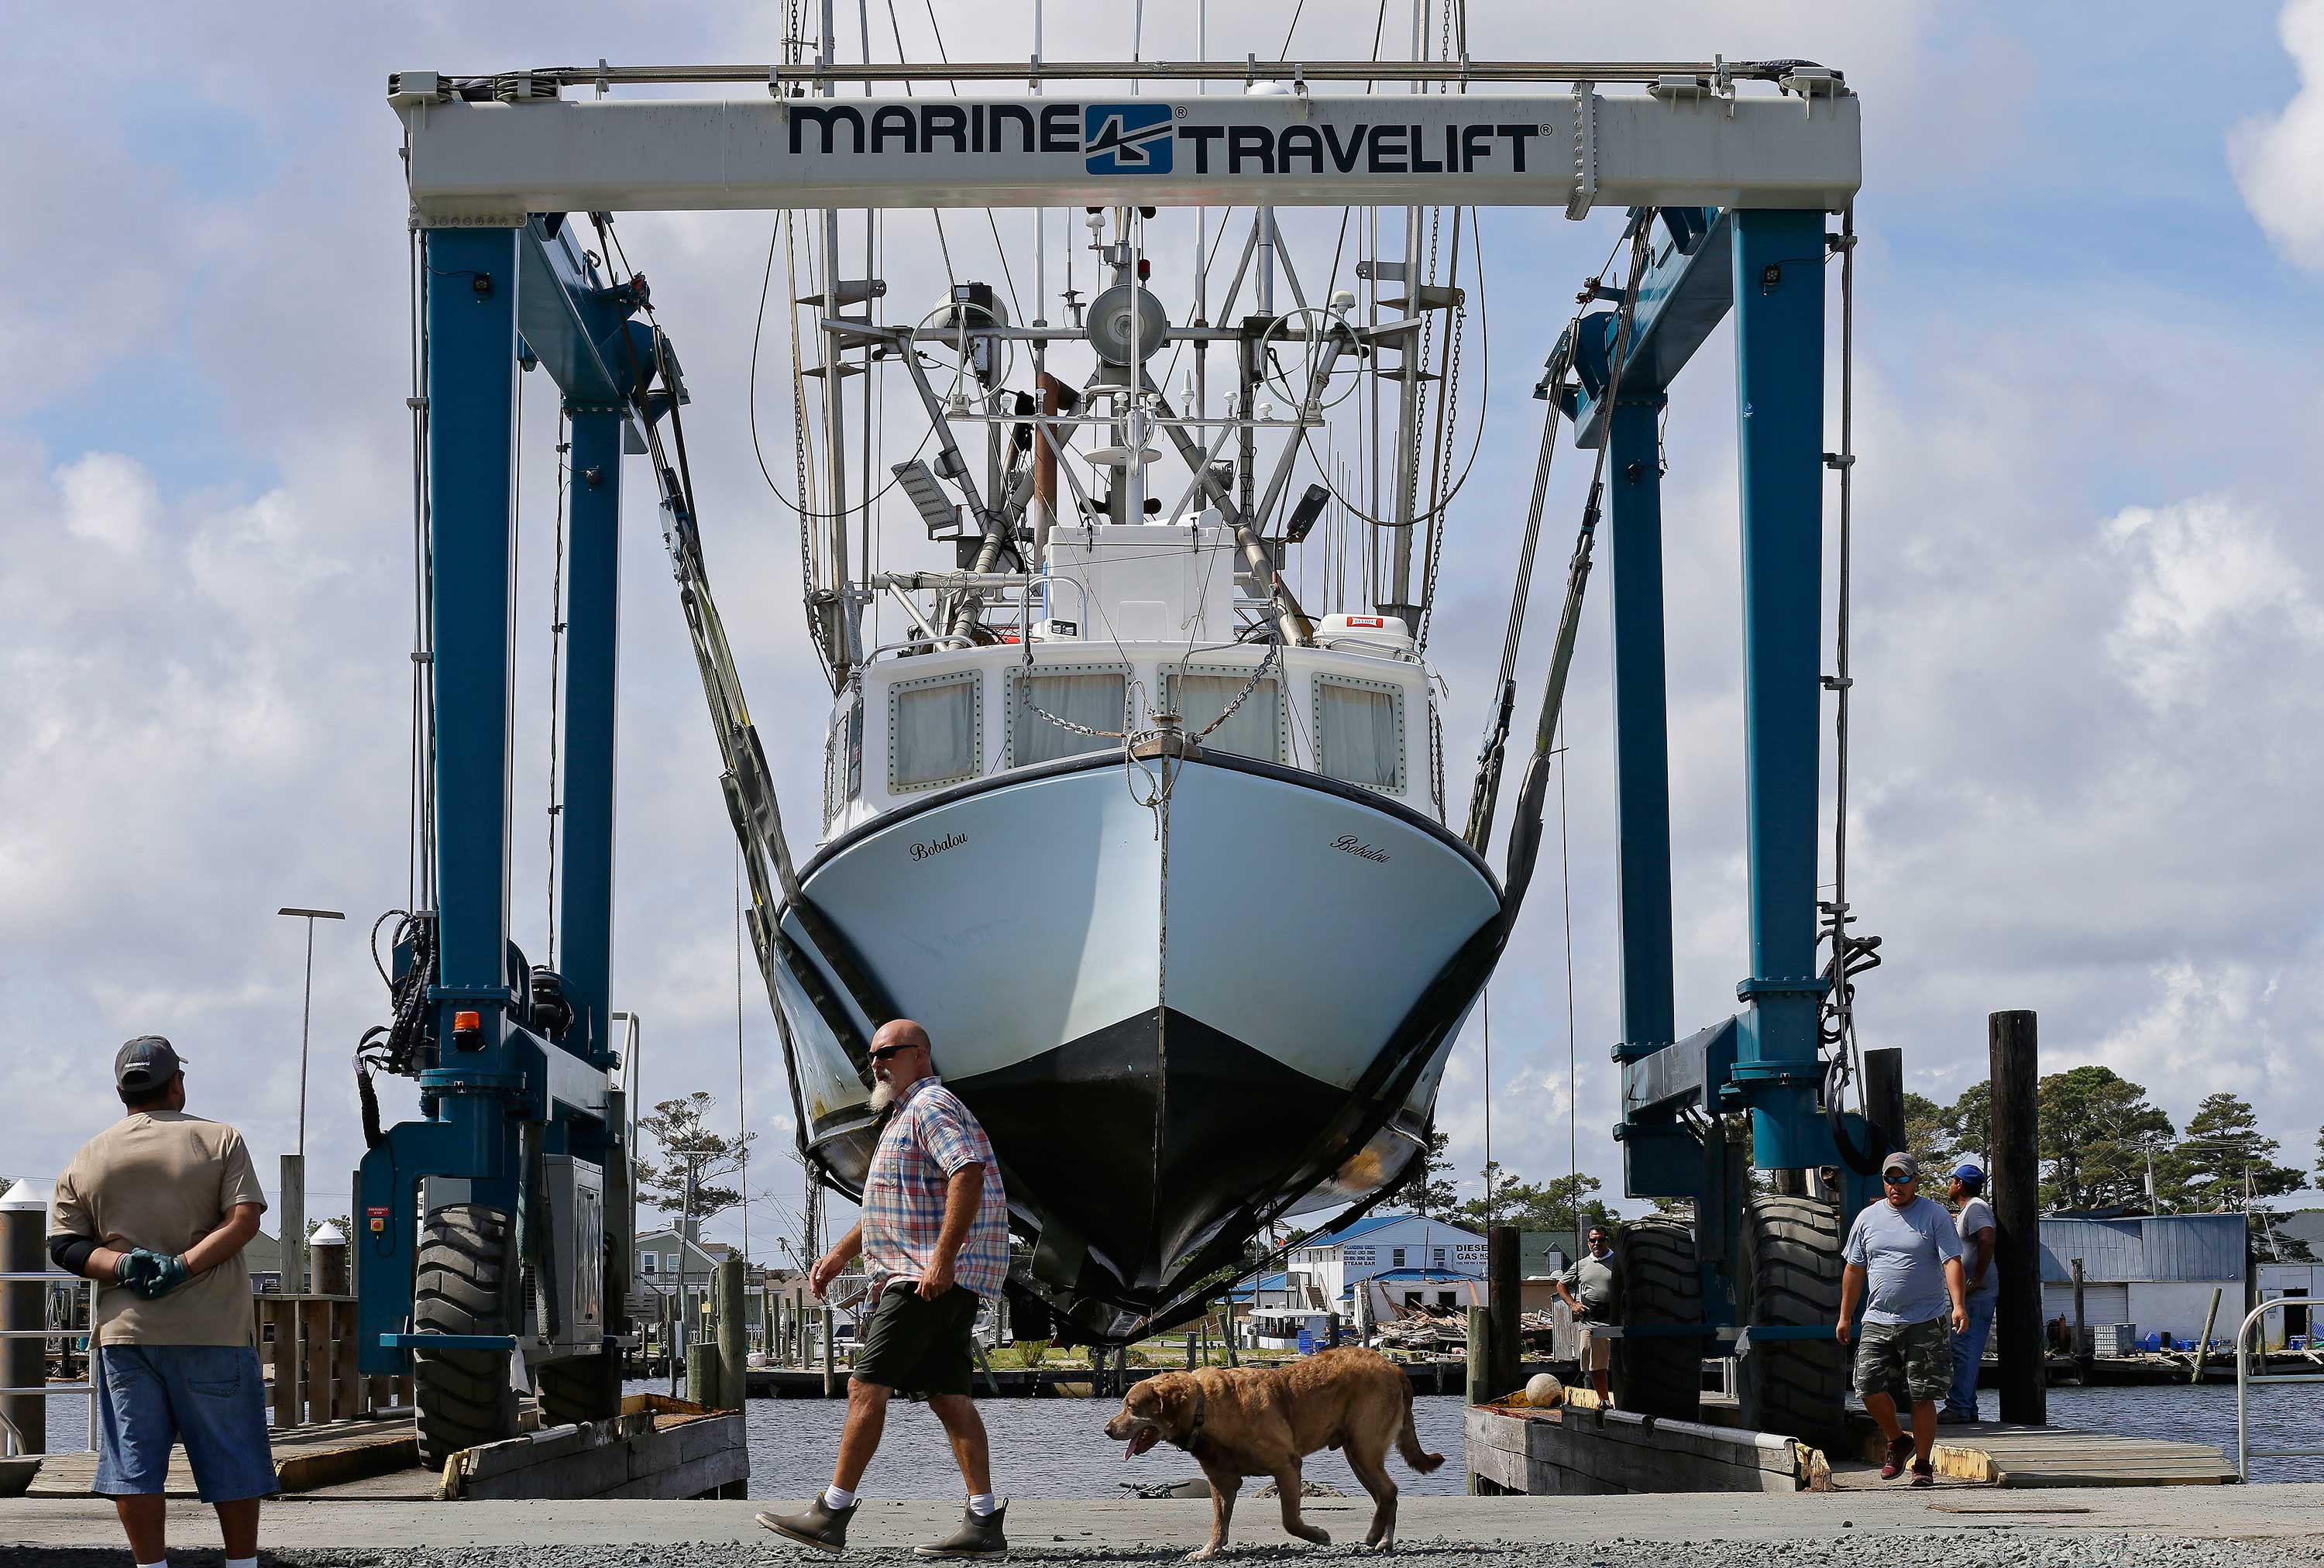 <div class='meta'><div class='origin-logo' data-origin='none'></div><span class='caption-text' data-credit='Gerry Broome/AP Photo'>Workers take boats out of the water in Wanchese Harbor as Hurricane Florence approaches the coast of the Carolinas on Wednesday, Sept. 12, 2018, in Wanchese, N.C.</span></div>